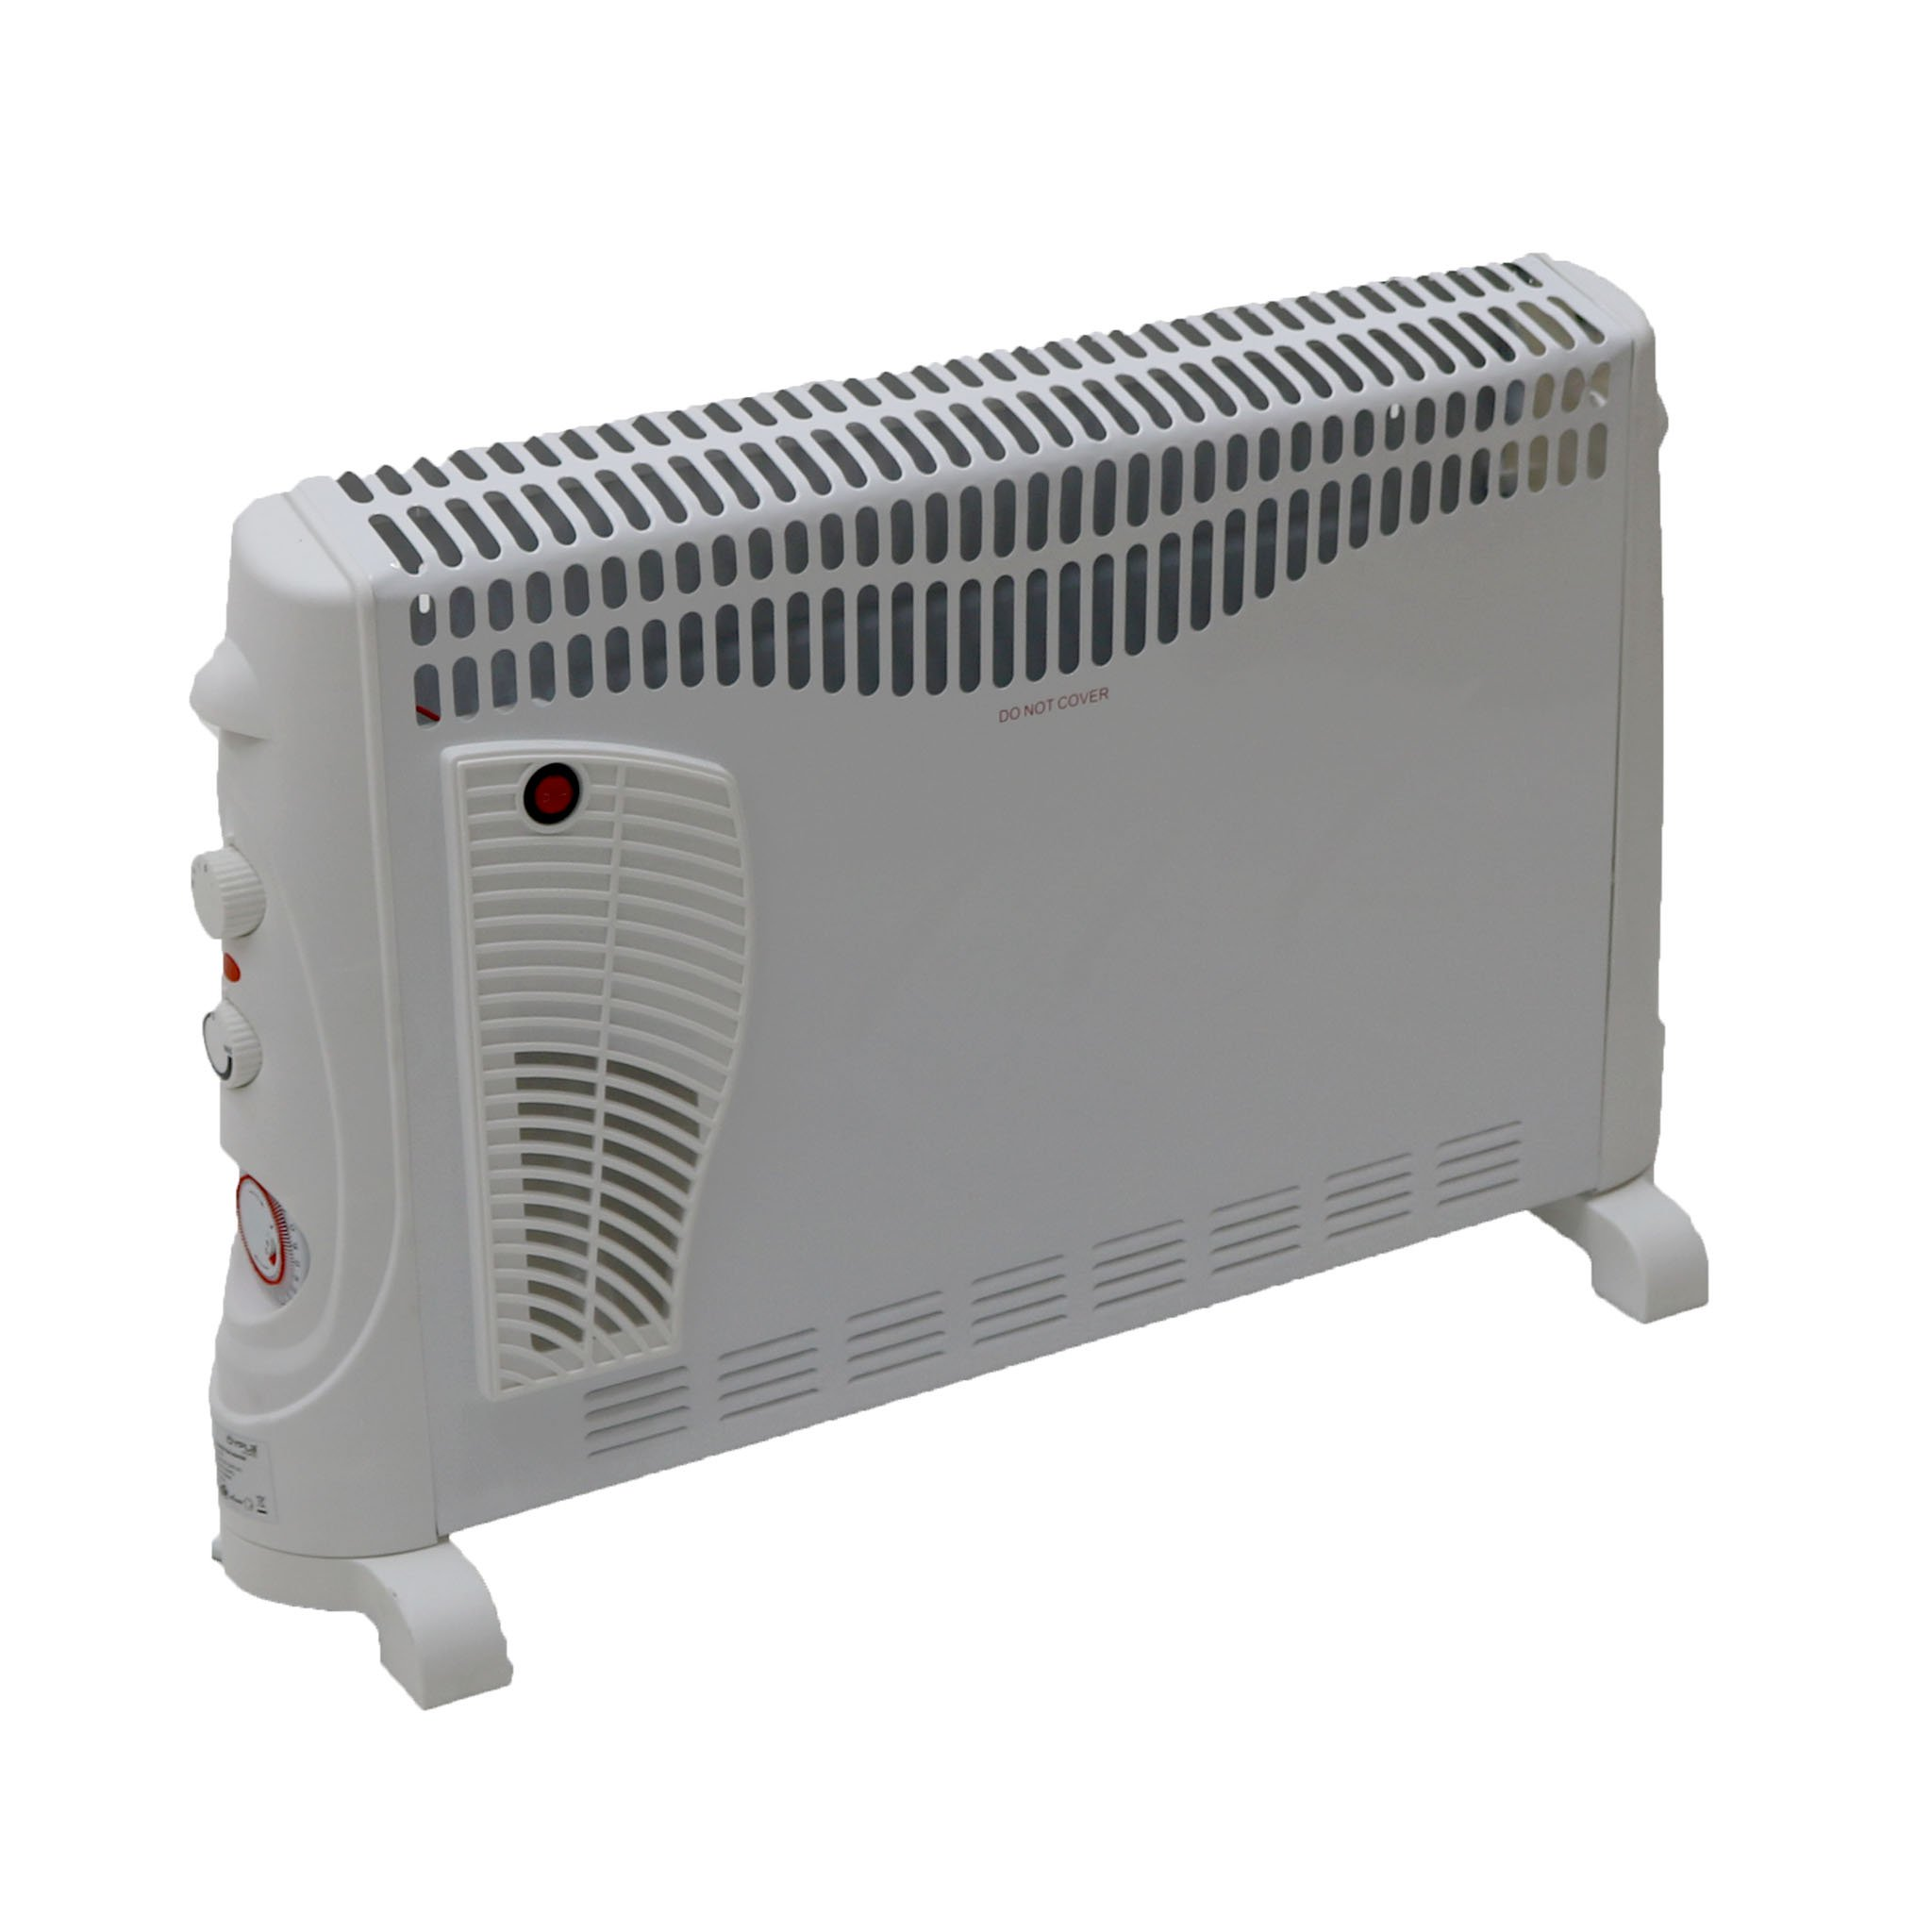 2kW Convector Heater - 3 Heat Settings, Turbo and Timer